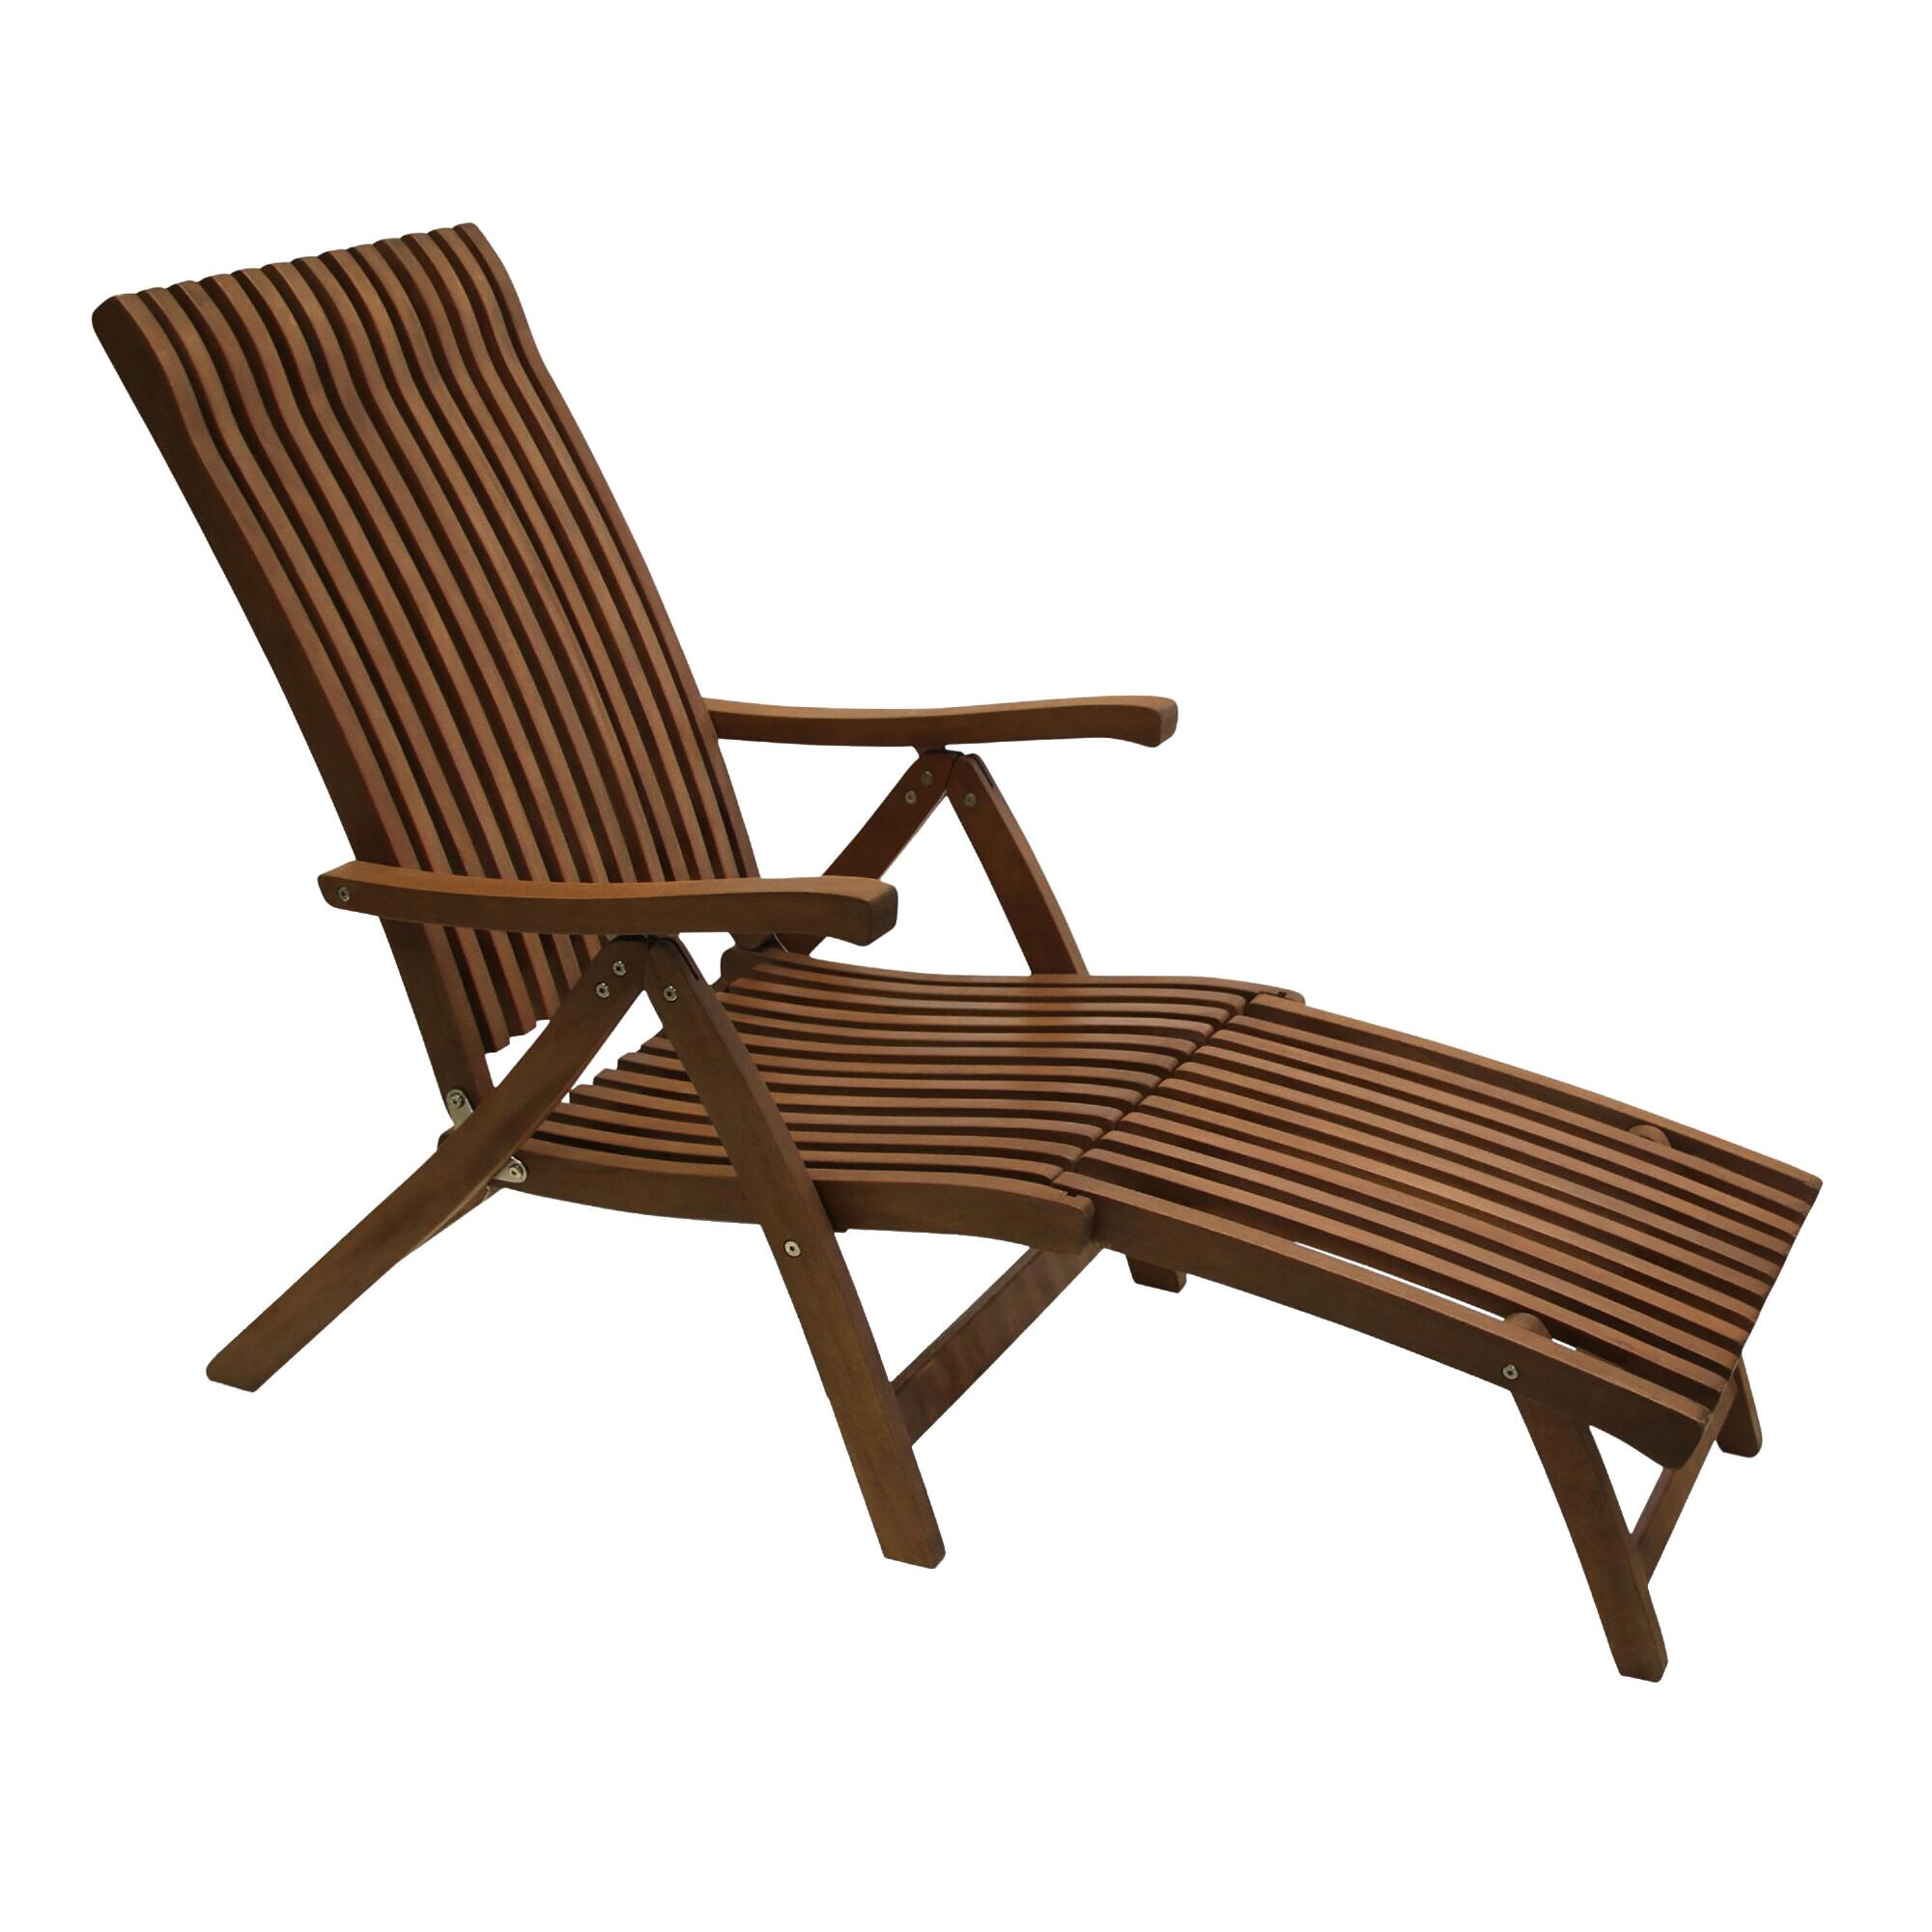 Compare Costway Pool Chaise Lounge Chair Recliner Patio